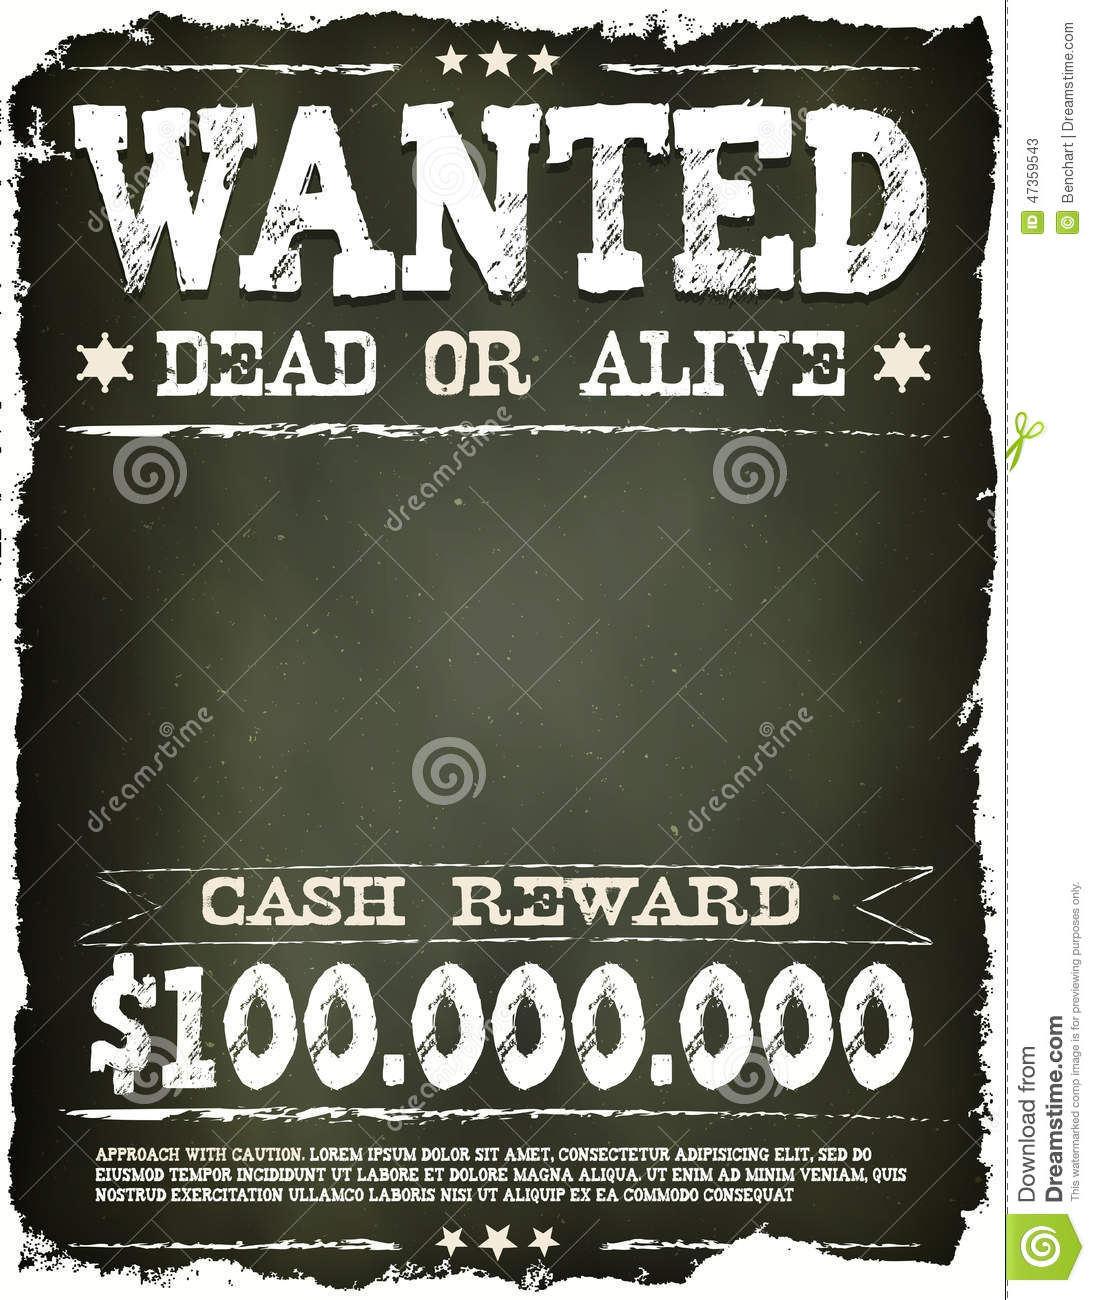 Wanted vintage western poster on chalkboard stock vector for Wanted dead or alive poster template free